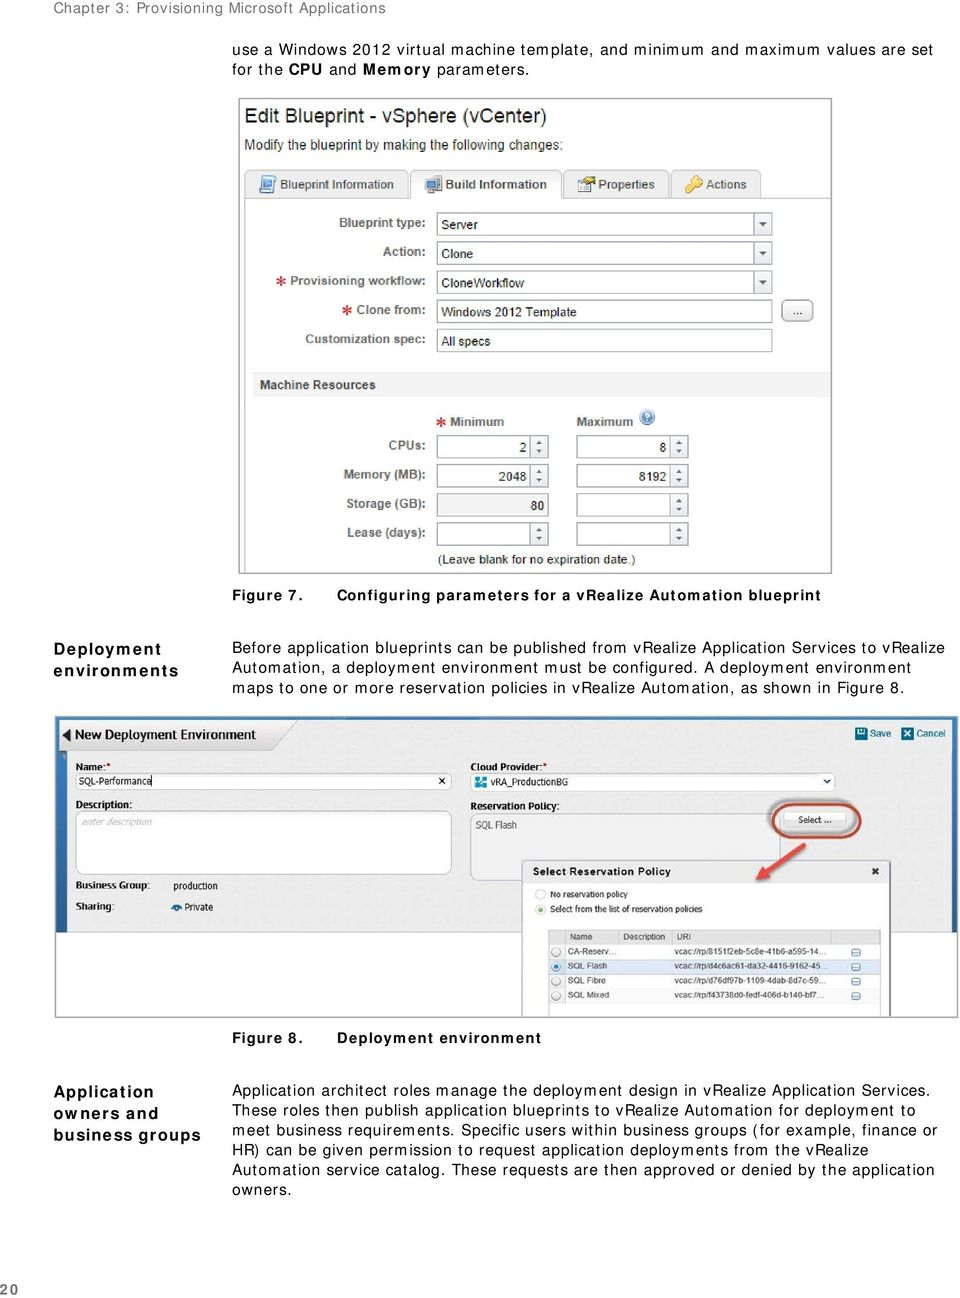 deployment environment must be configured. A deployment environment maps to one or more reservation policies in vrealize Automation, as shown in Figure 8.